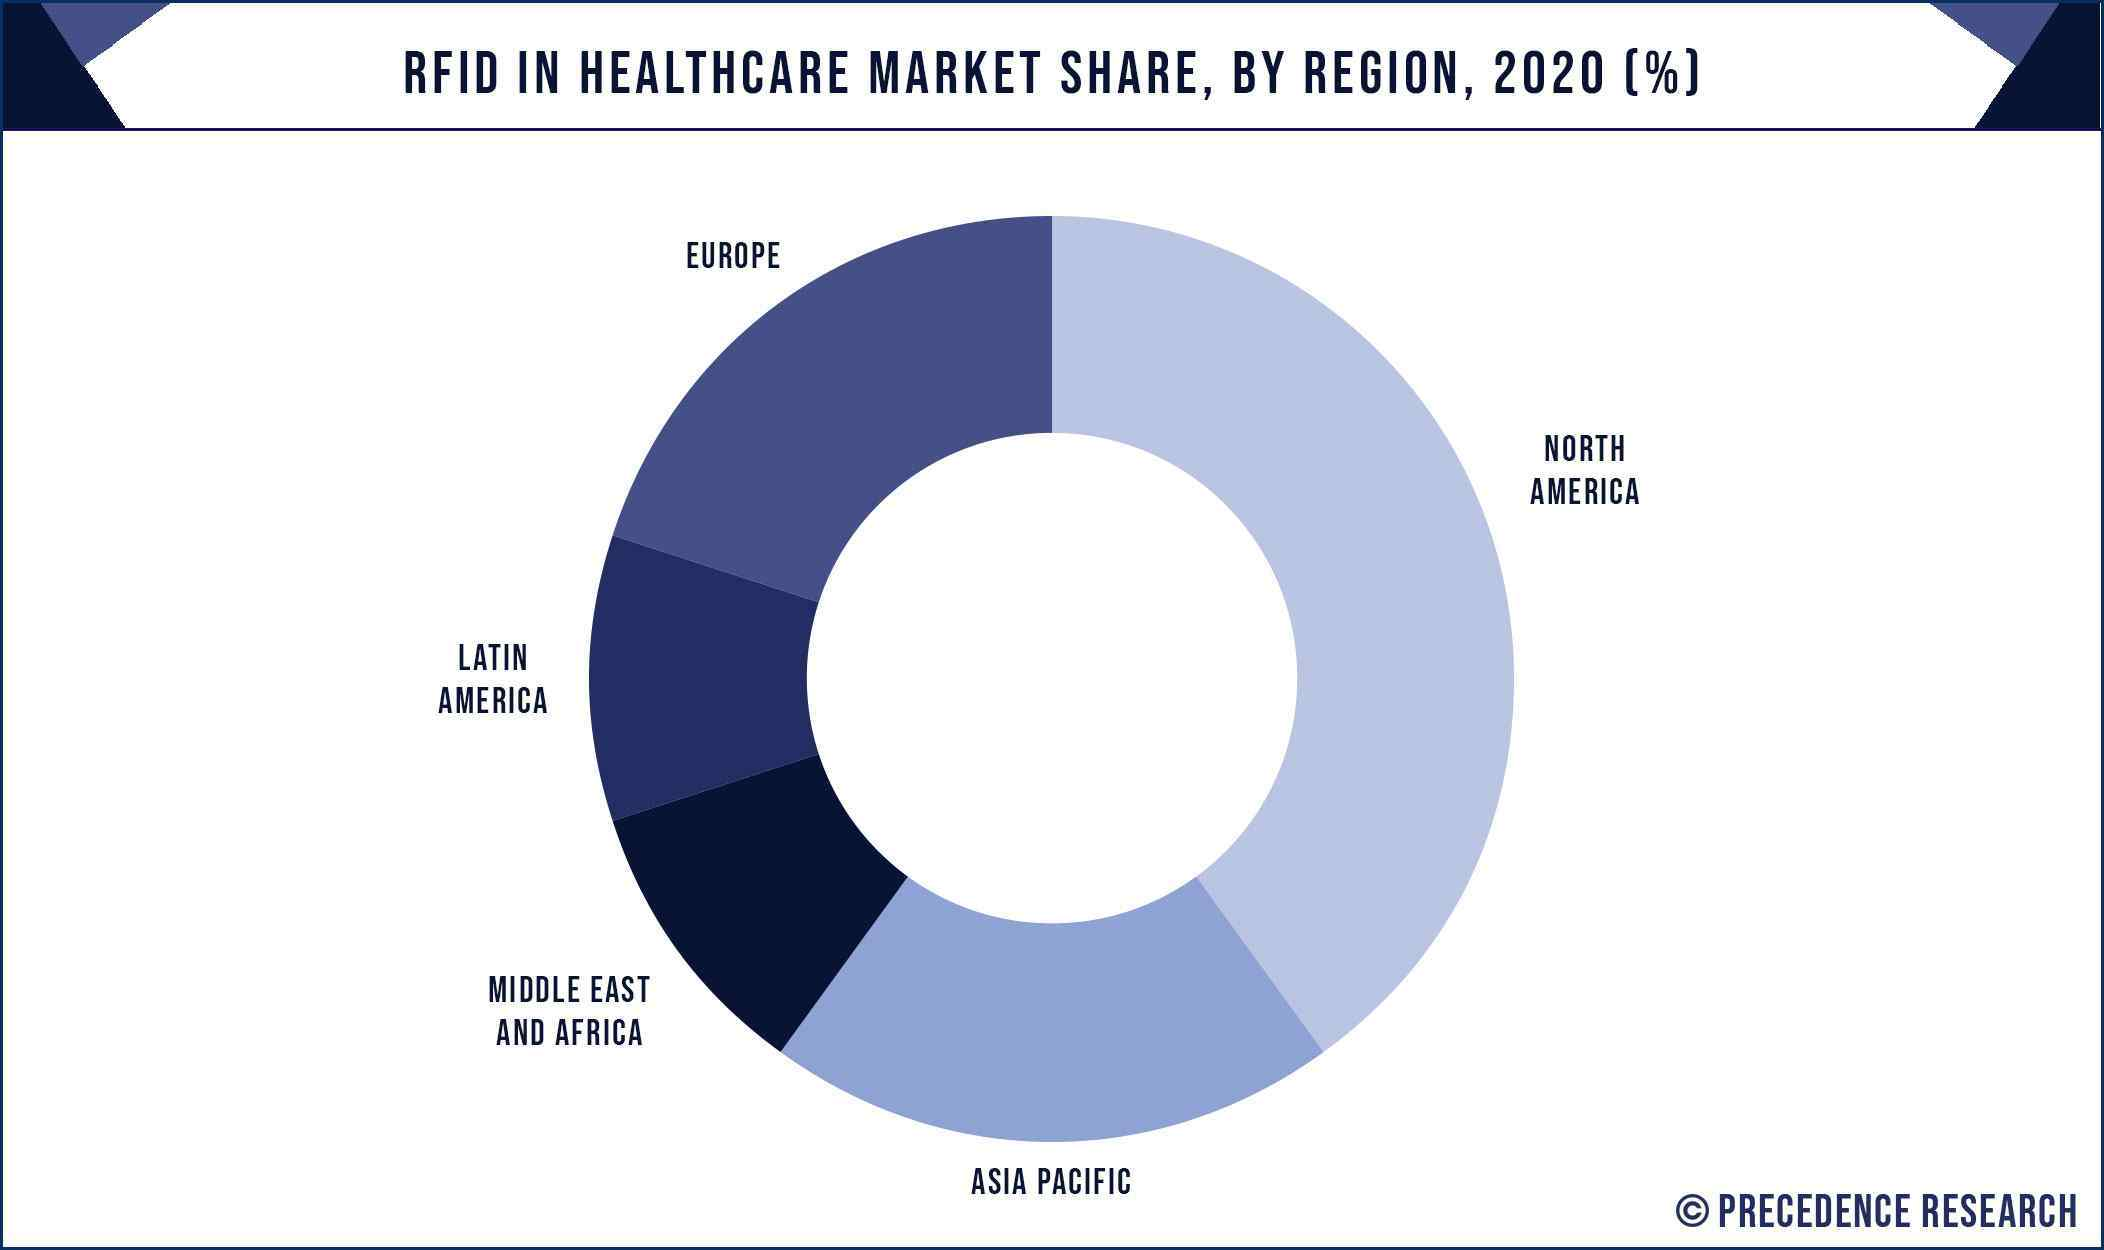 RFID in Healthcare Market Share, By Region, 2020 (%)